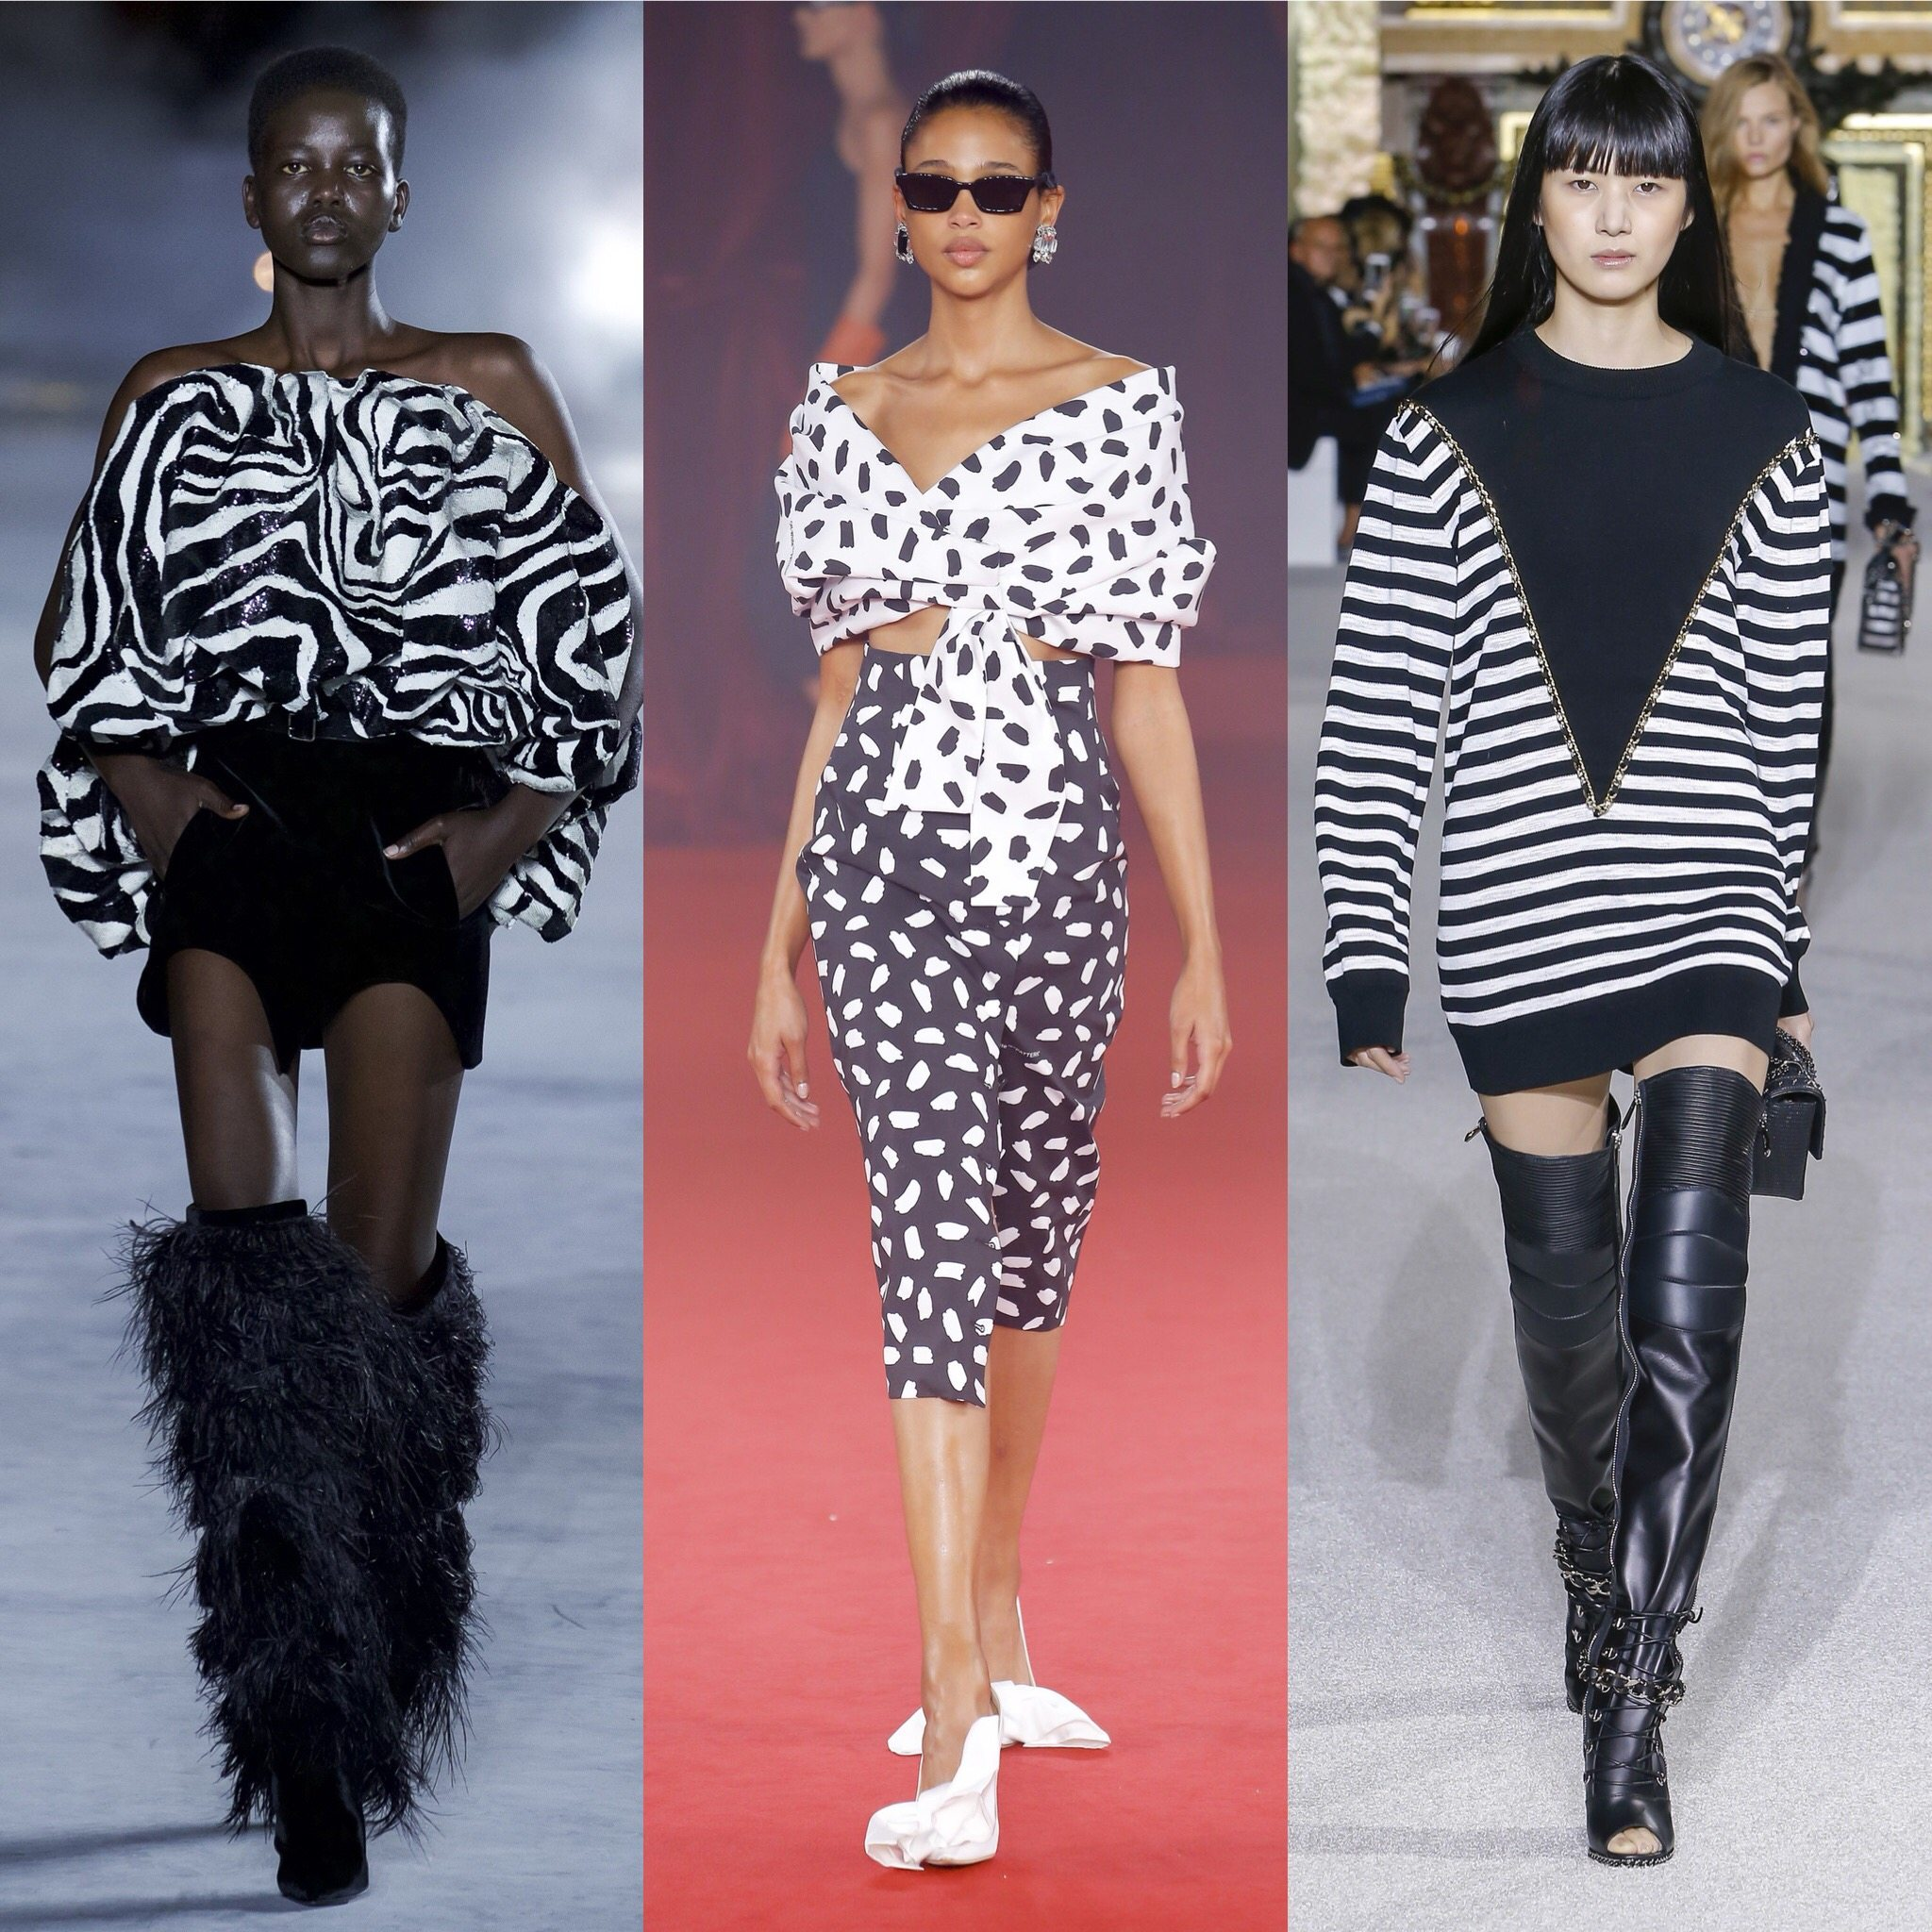 Spring 2018 Trends: Fashion Week coverage - Graphic Black and White - Saint Laurent - Off-White - Balmain. More on Houseofcomil.com. Pictures from Vogue